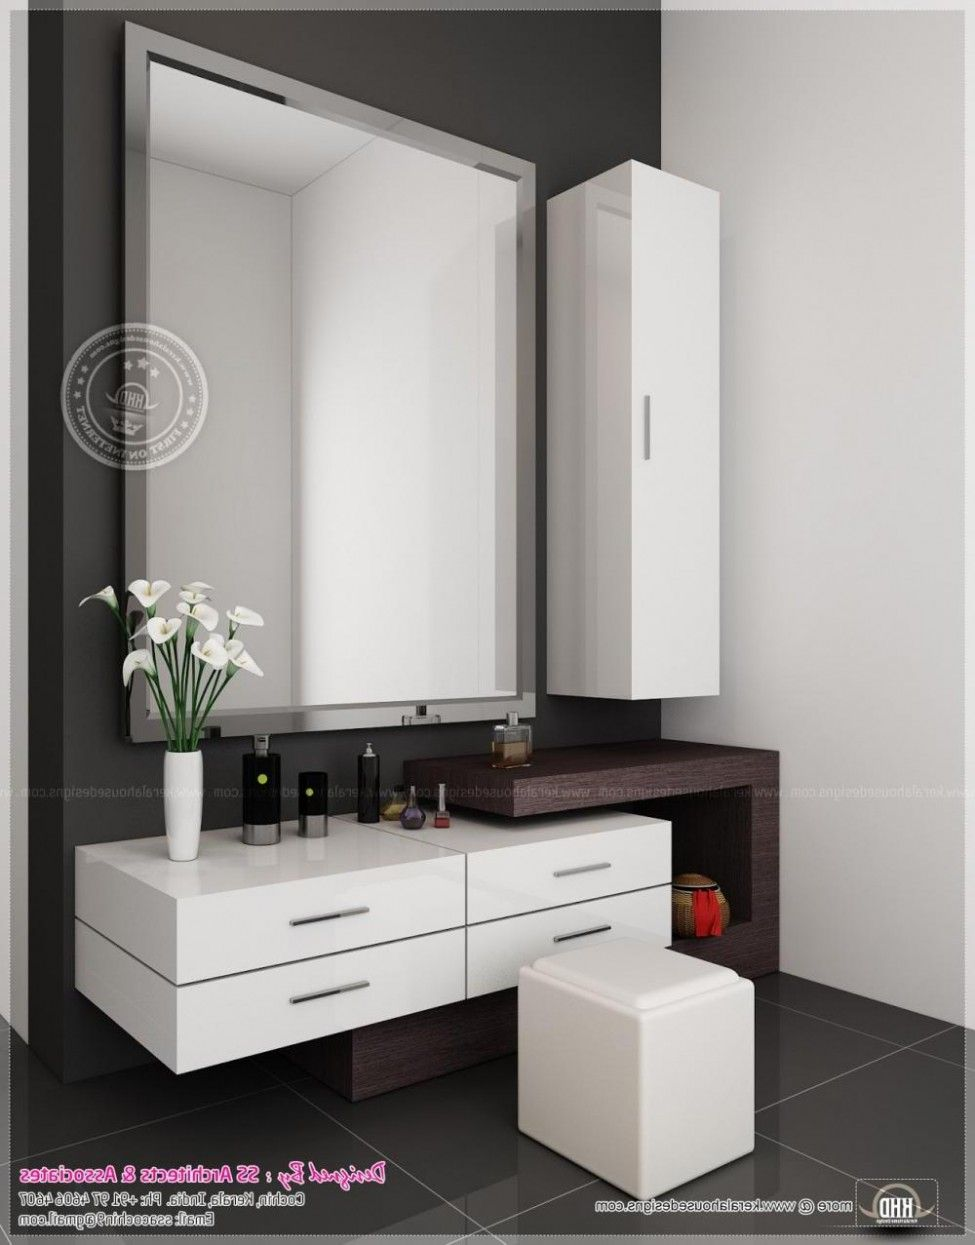 Dressing table minimalist and modern latest dressing table for Bathroom dressing ideas